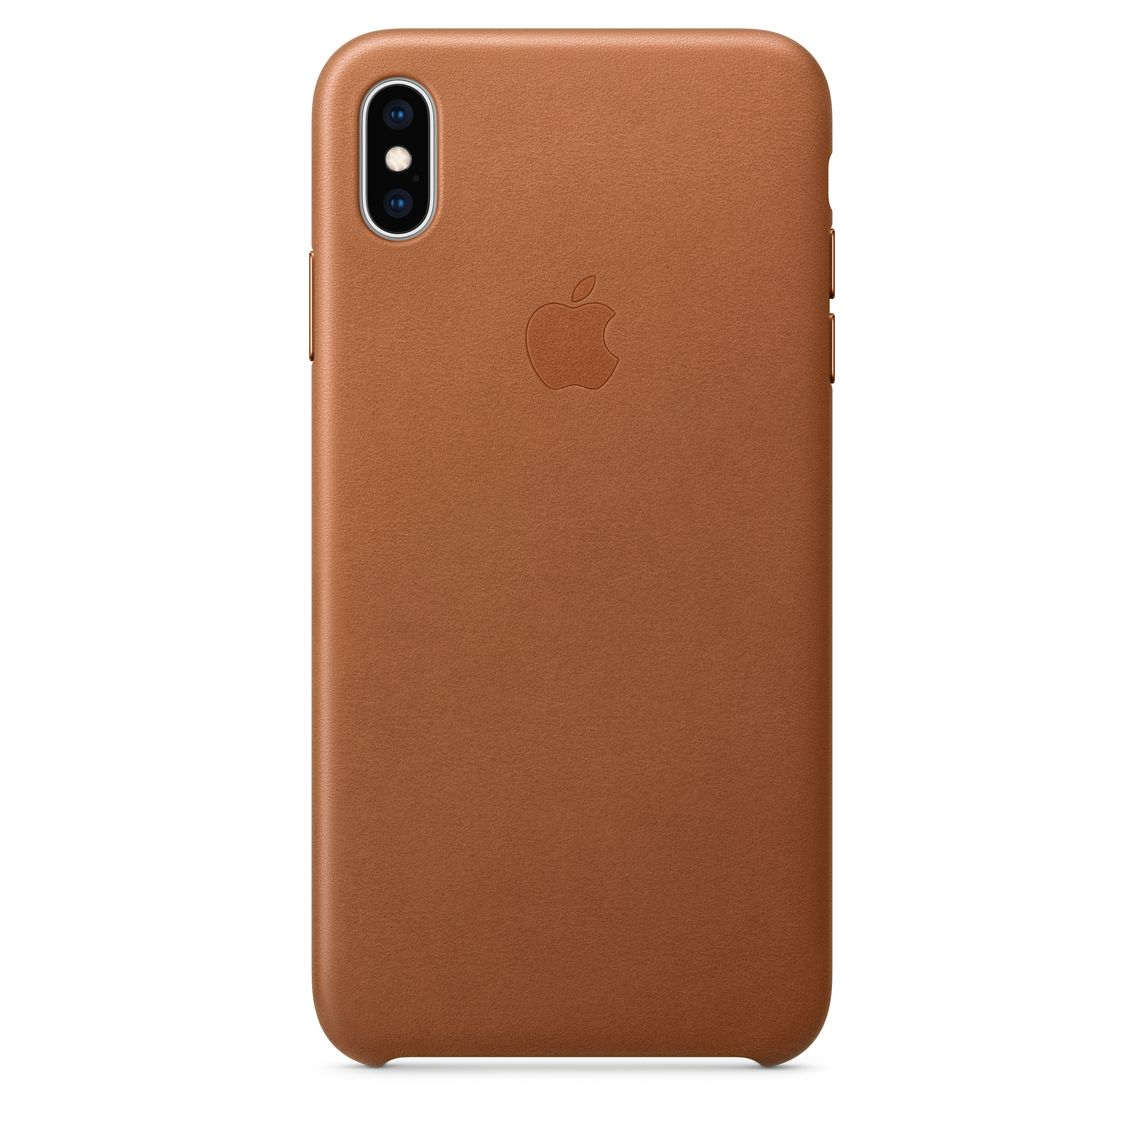 cheap for discount c2271 c9860 iPhone XS Max Leather Case - Saddle Brown